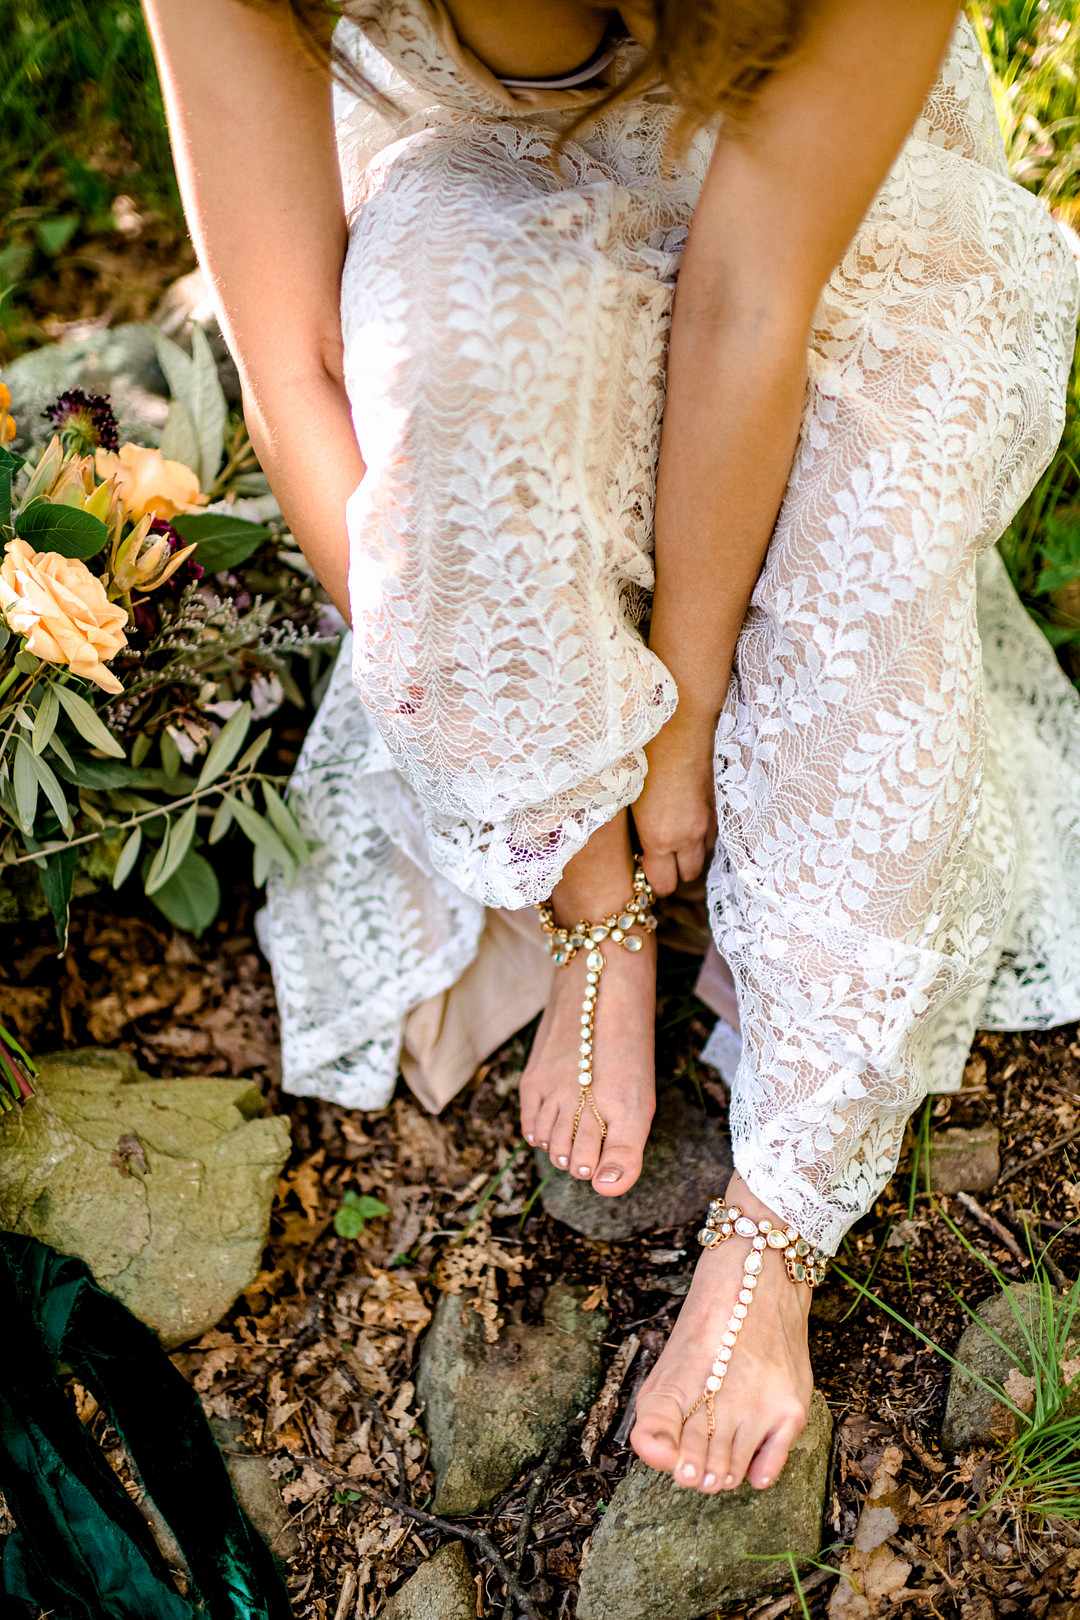 Boho Mountain Elopement in Shenandoah National Park_1001 Angles Photography_Shenandoah National Park Adventure Elopement-22_low